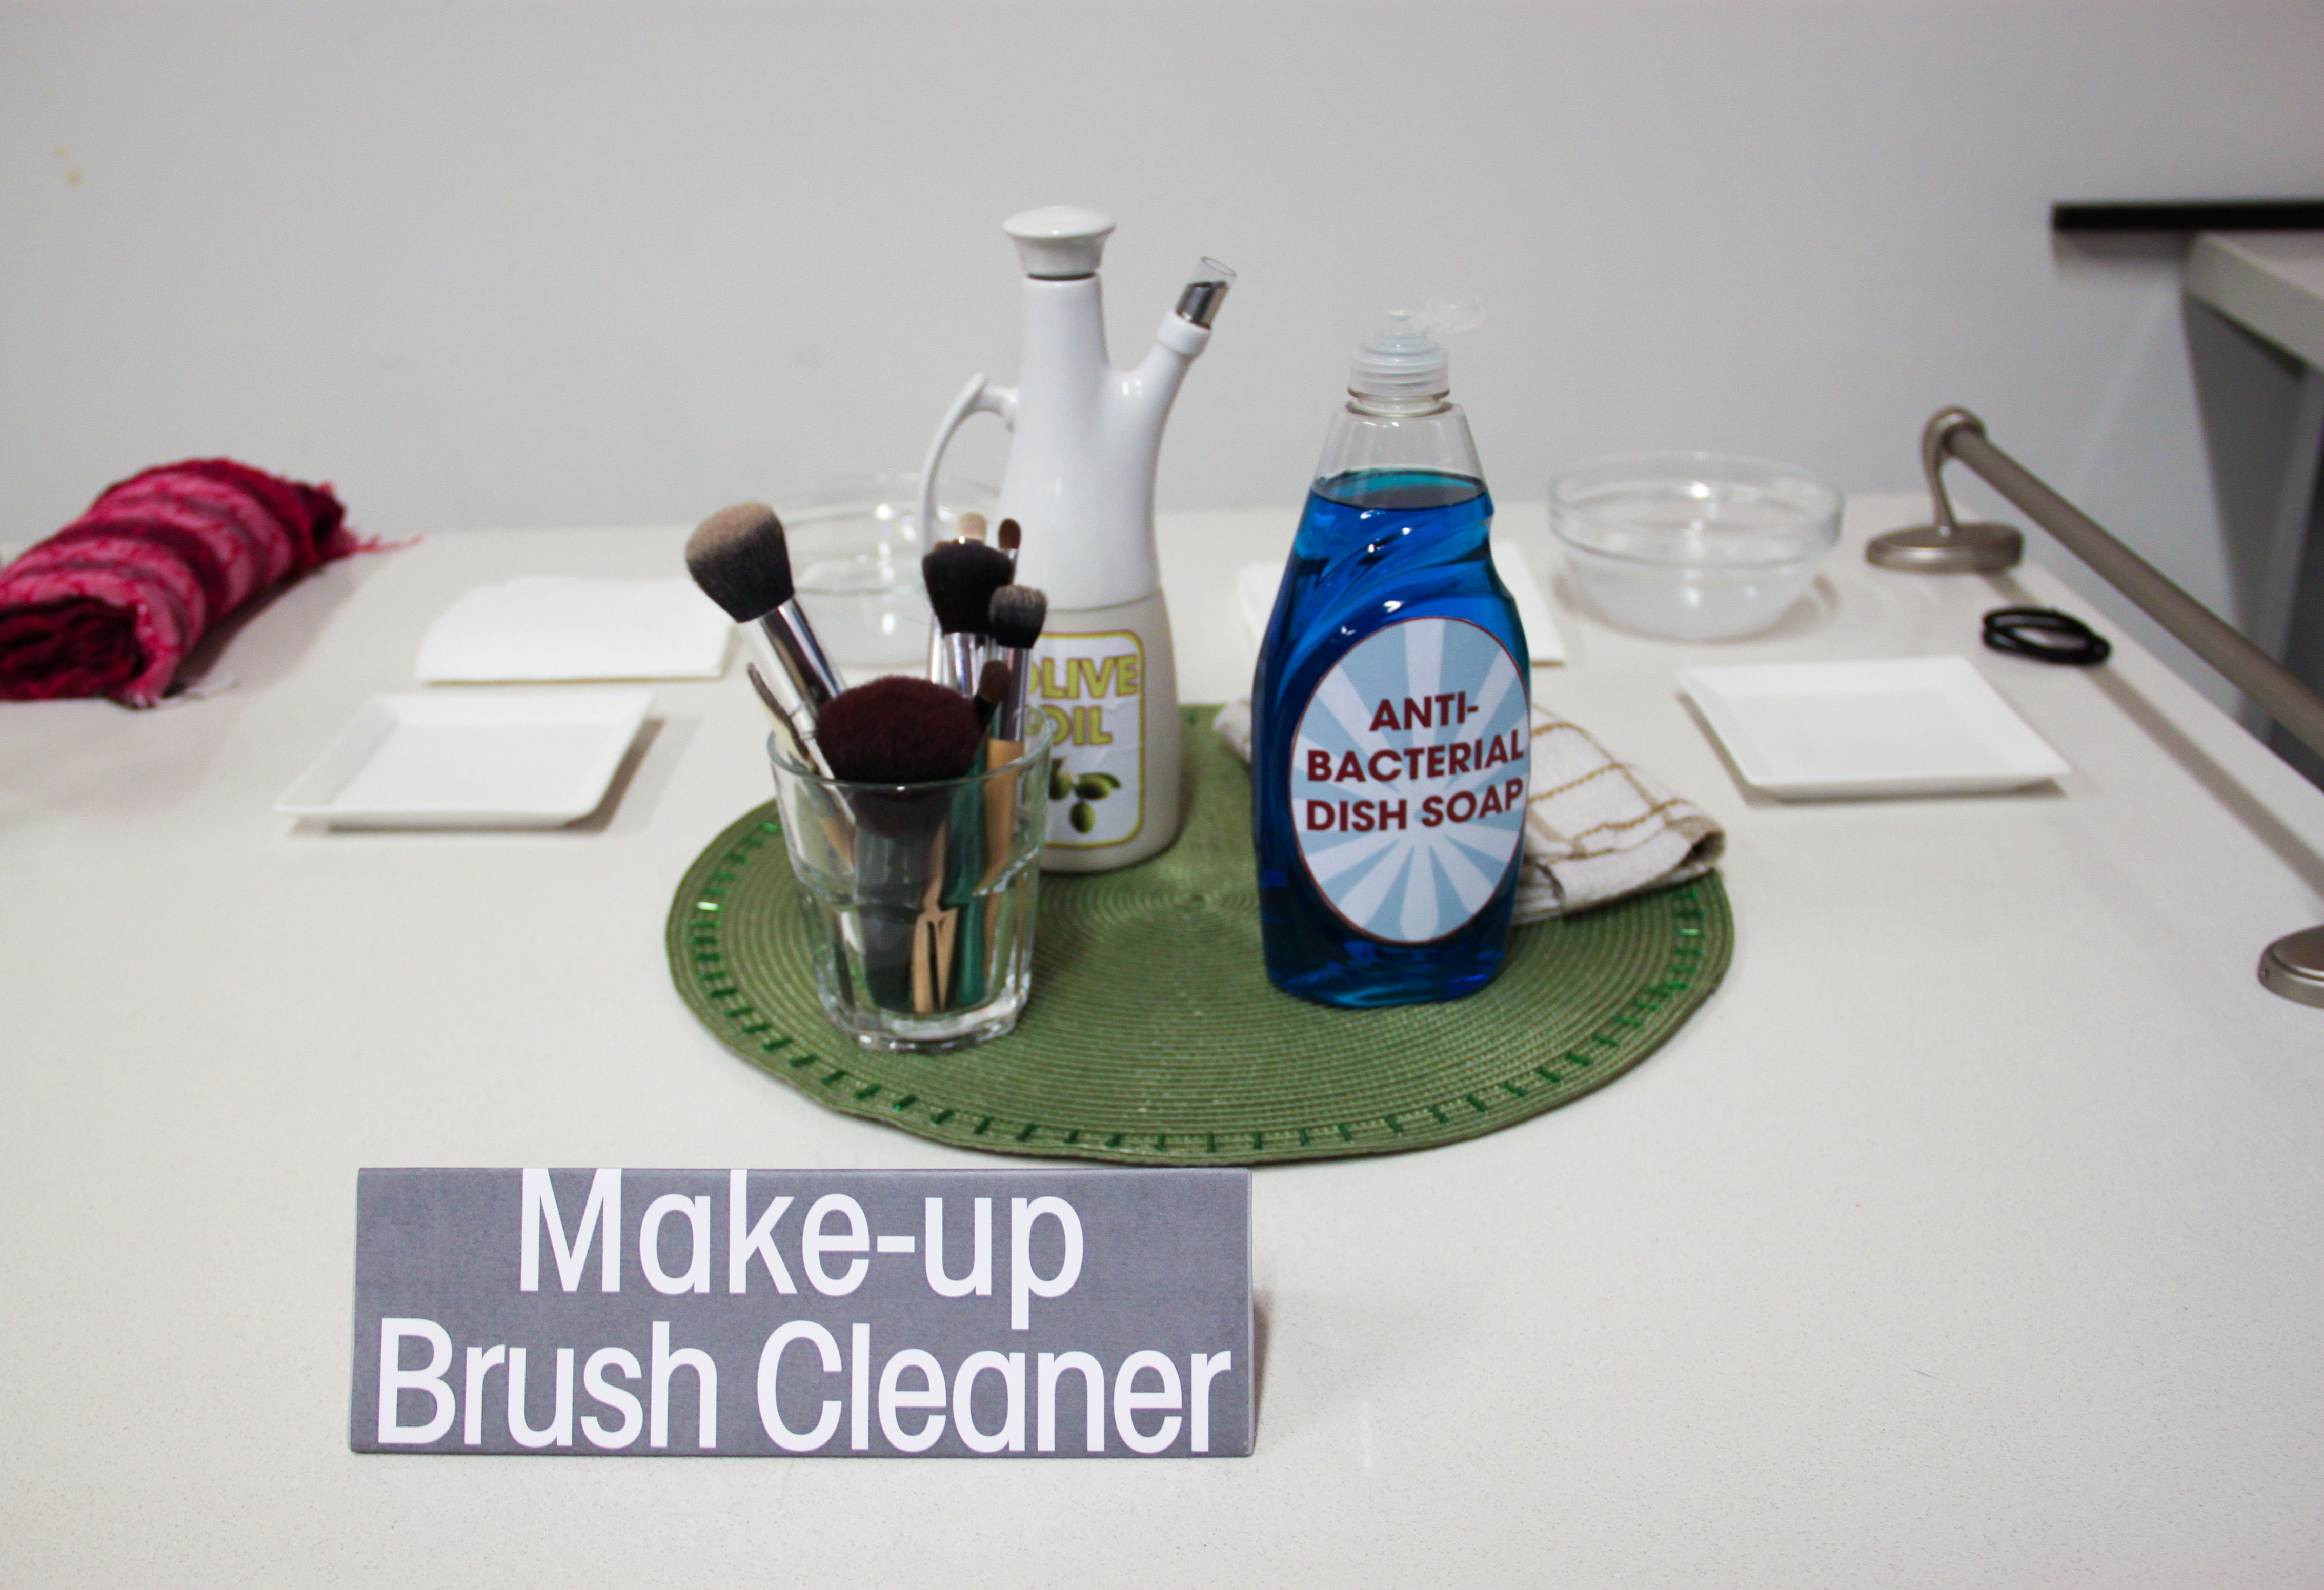 DIY BRUSH CLEANER 1/2 T. olive oil, 1 T. antibacterial